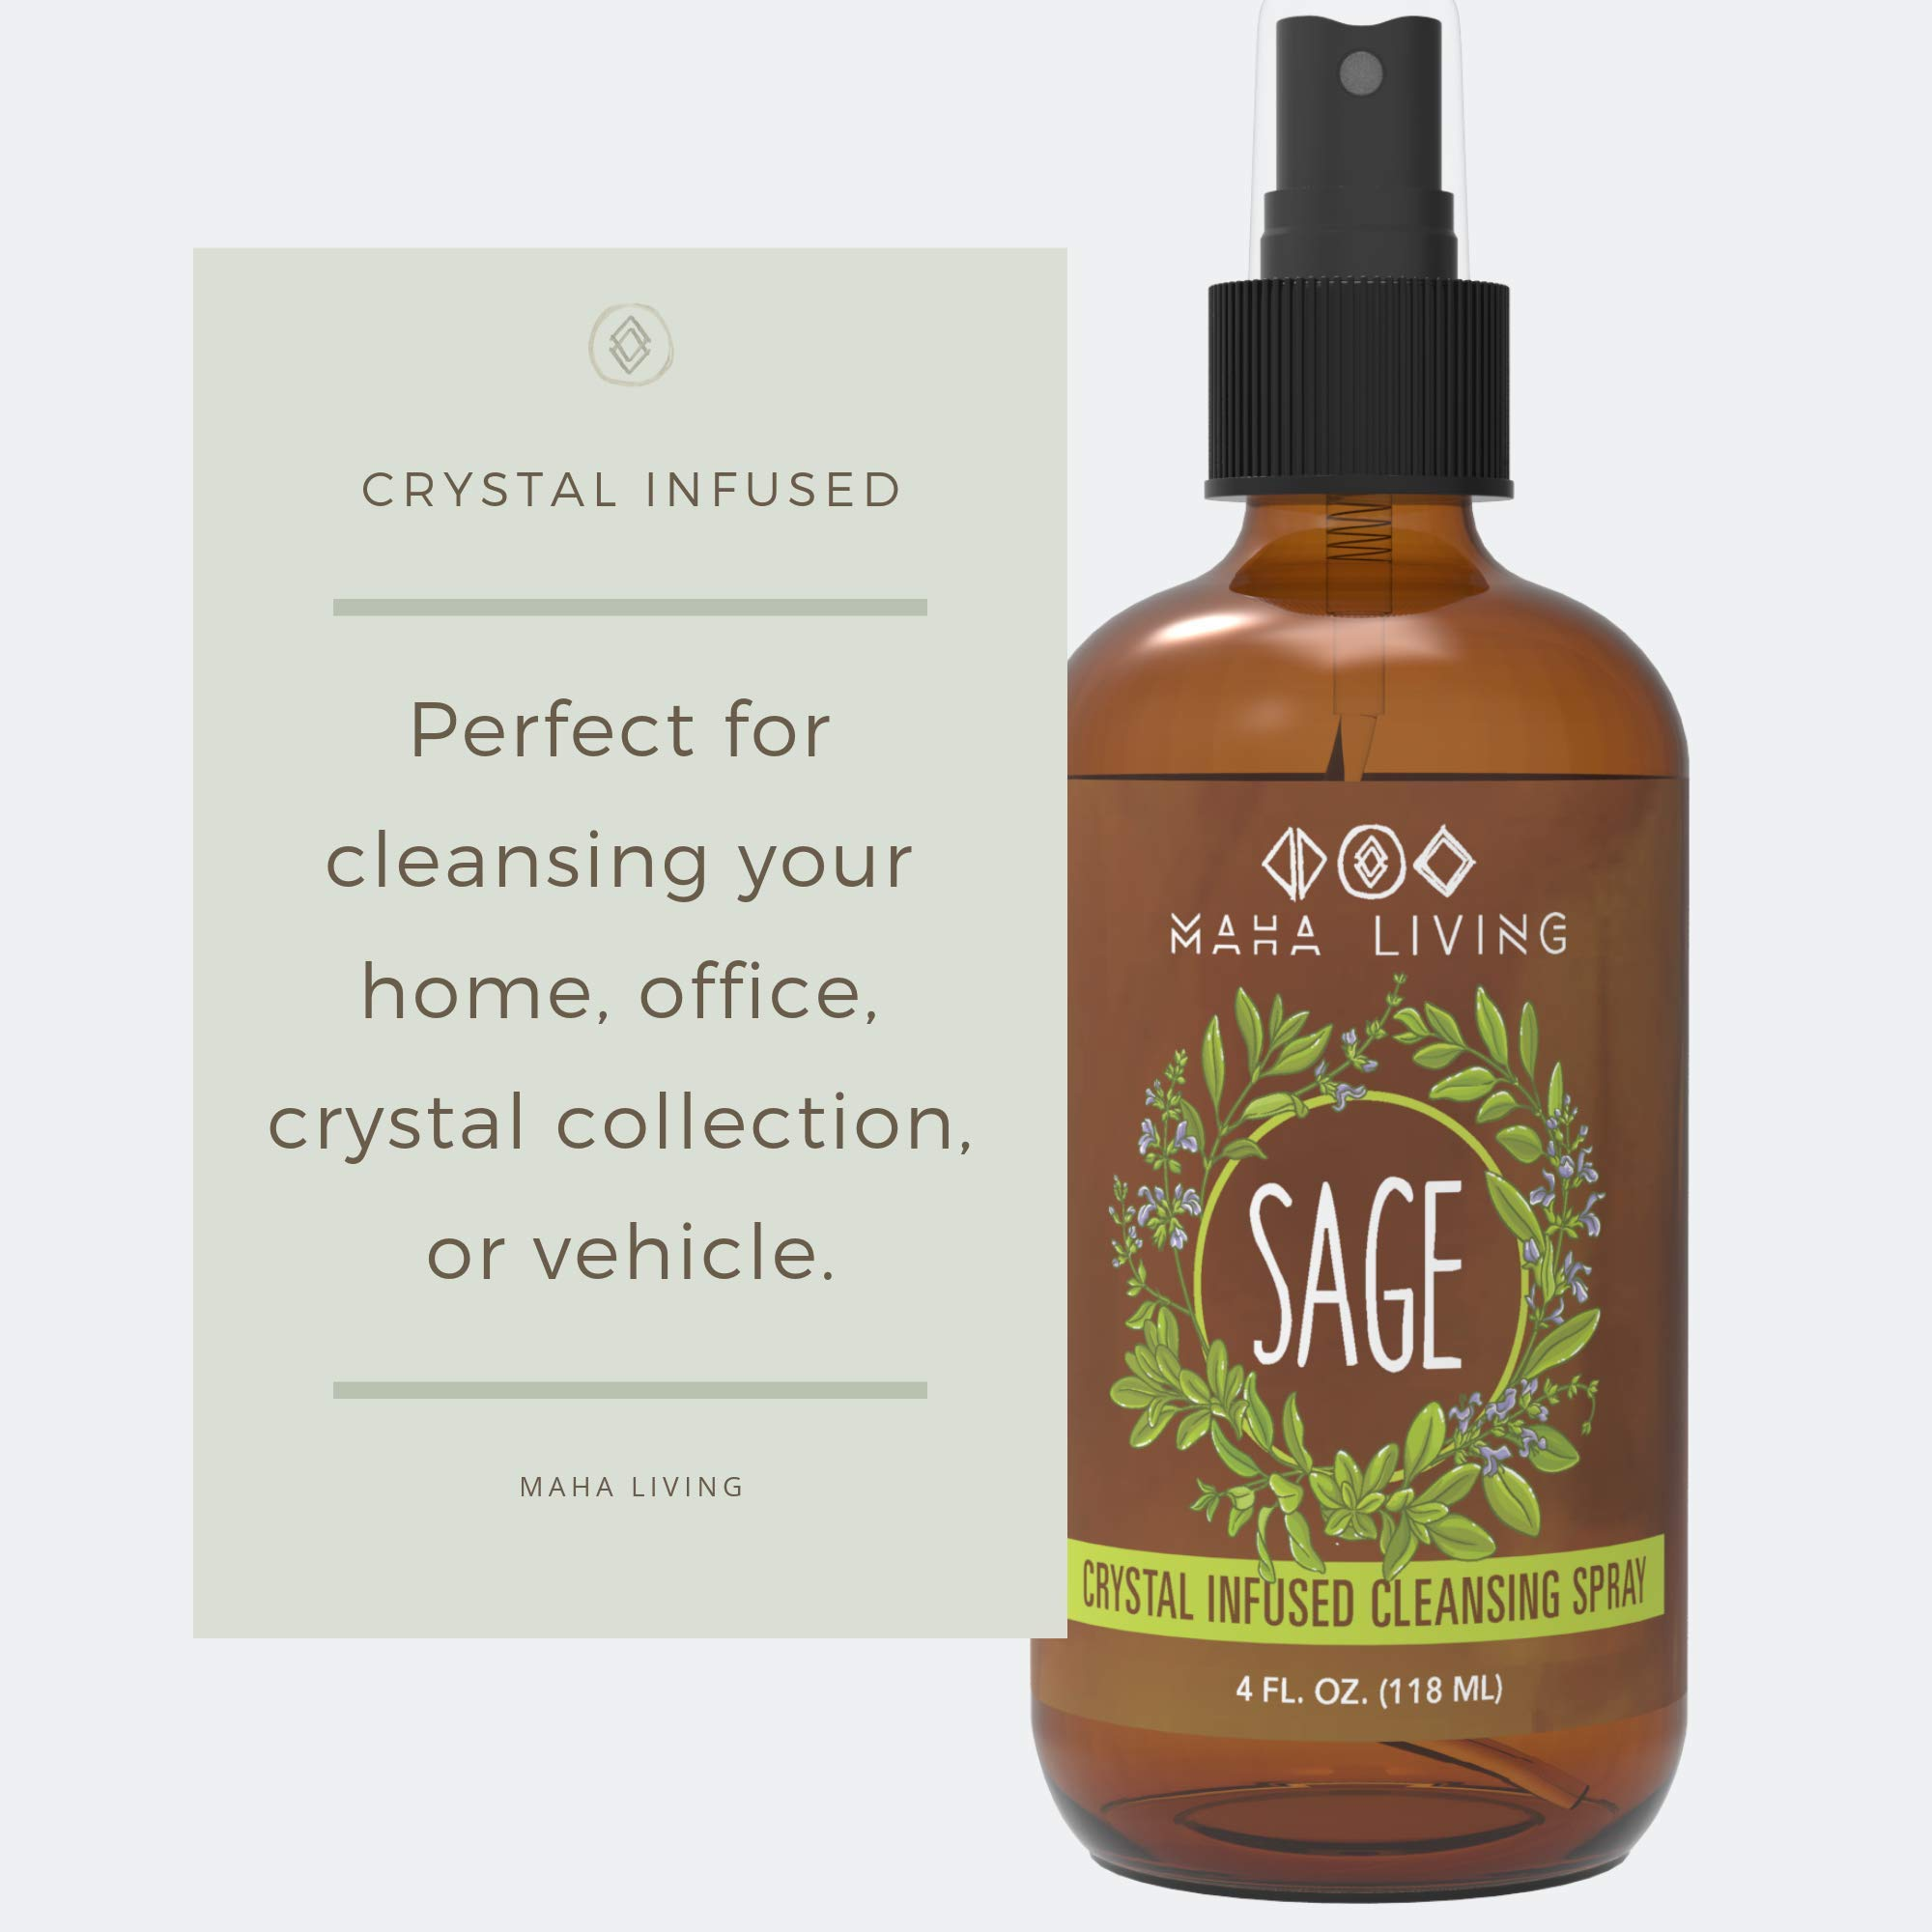 Sage Spray - Natural Essential Oil Spray for Cleansing Your Home, Office, or Linens - Crystal Infused to Help Purify And Restore - Perfect as an Air Freshener, Pillow Spray, or Aromatic Mist (4 oz) by Maha Living (Image #7)